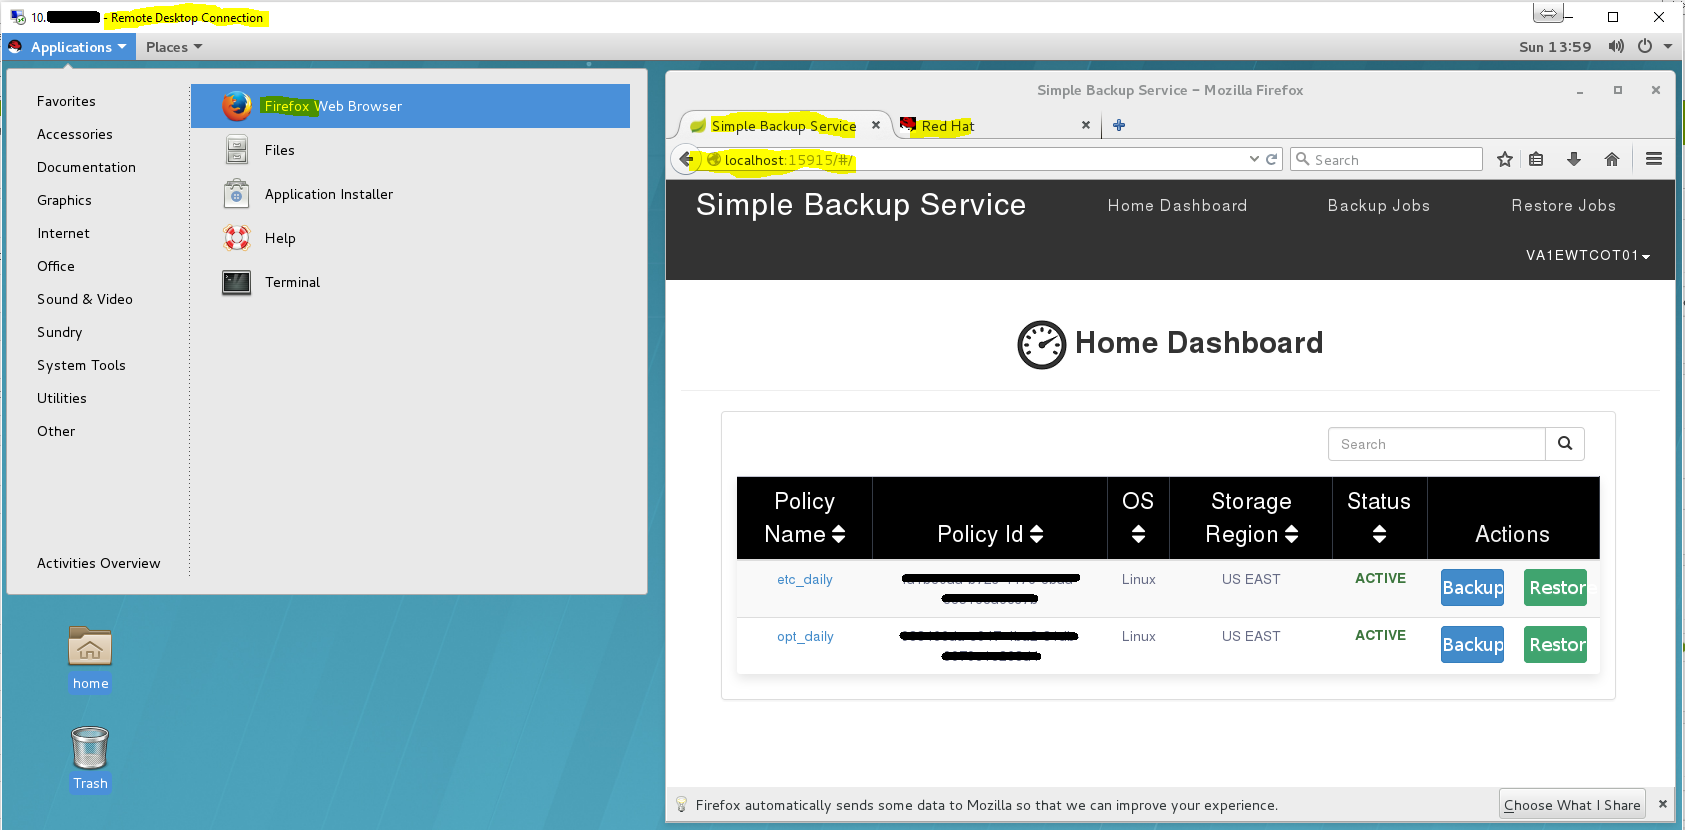 Install RDP on Linux for SBS - Hybrid Cloud and IT Solutions